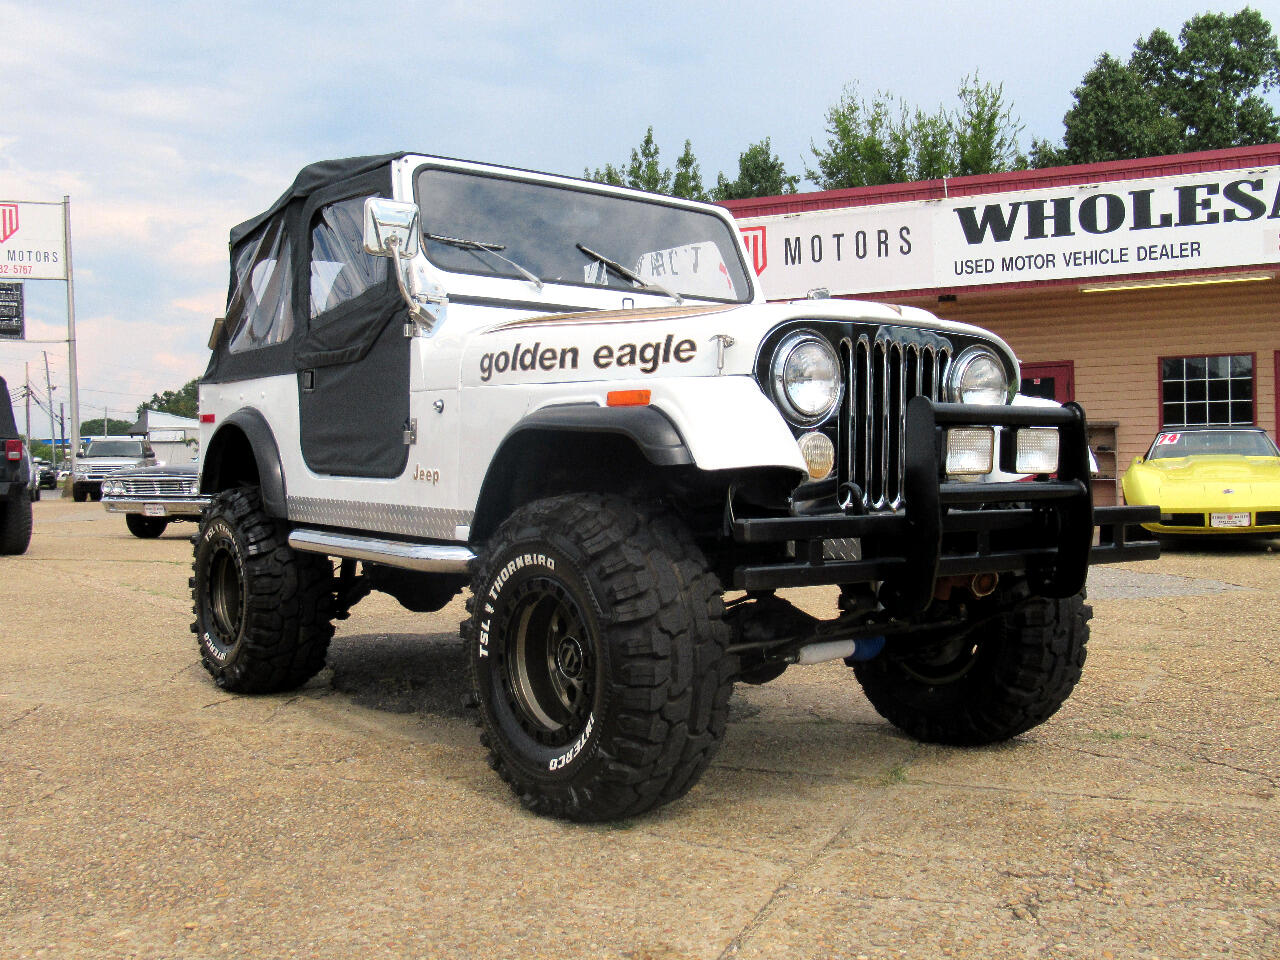 1978 Jeep CJ-7 Golden Eagle